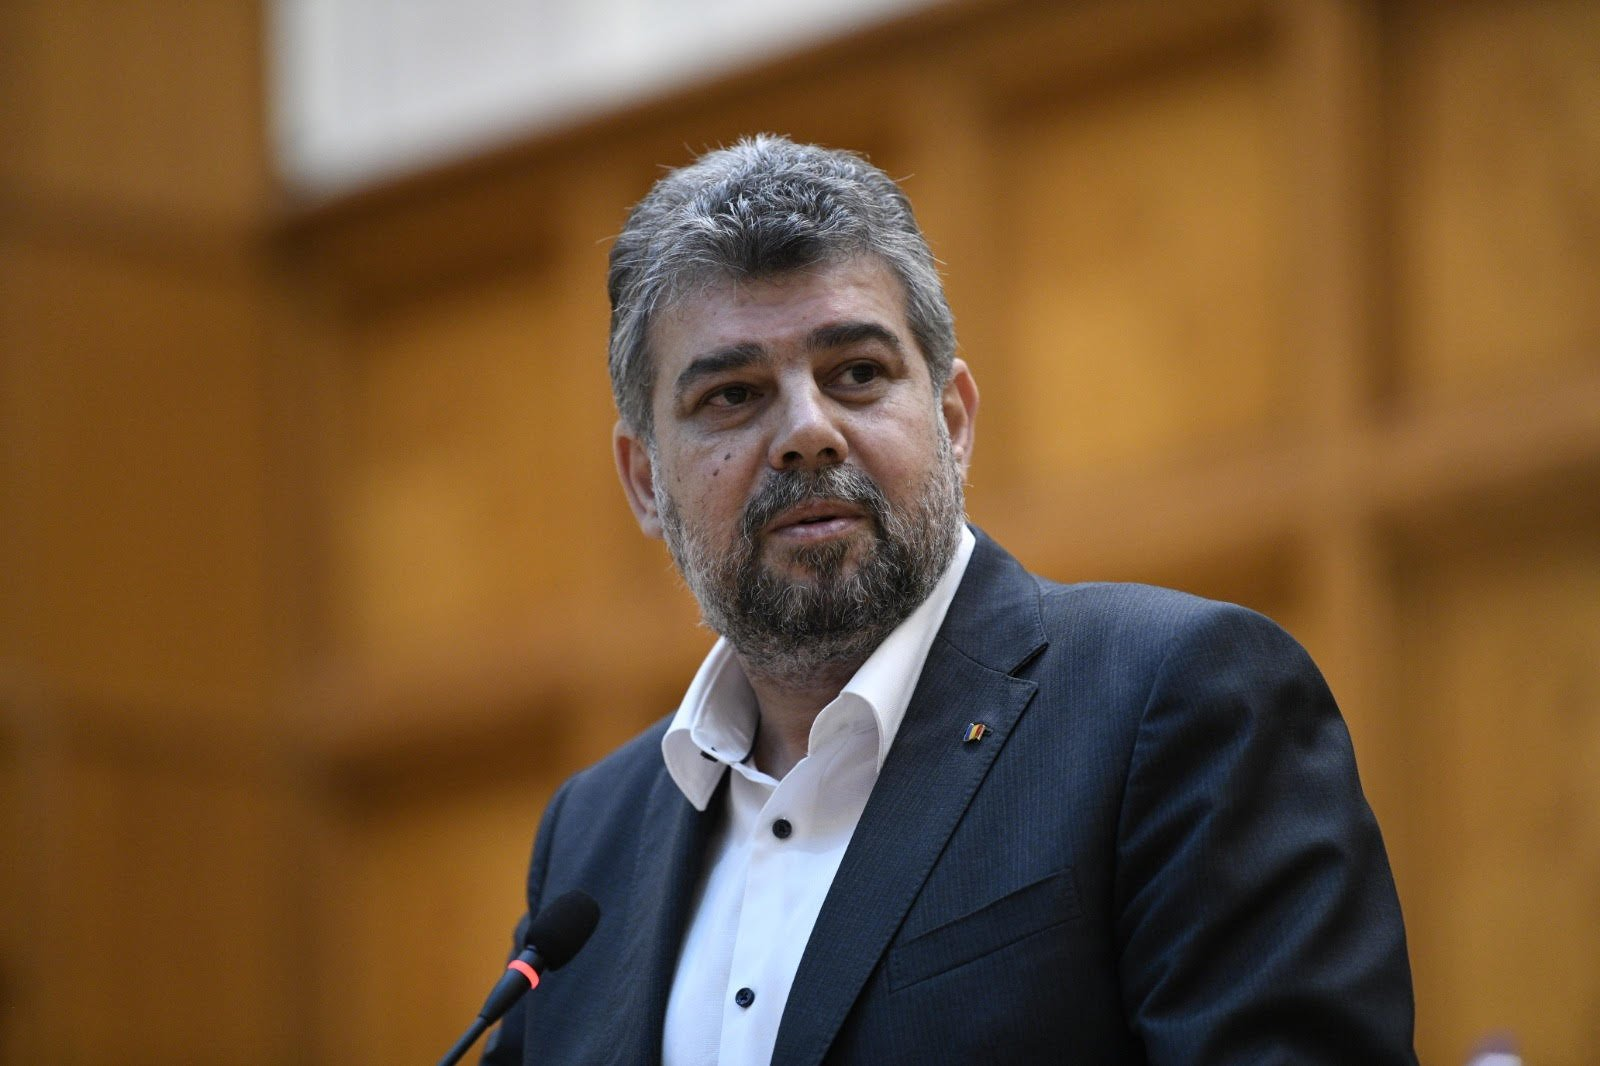 Romania: Motions of censure filed against two Ministers